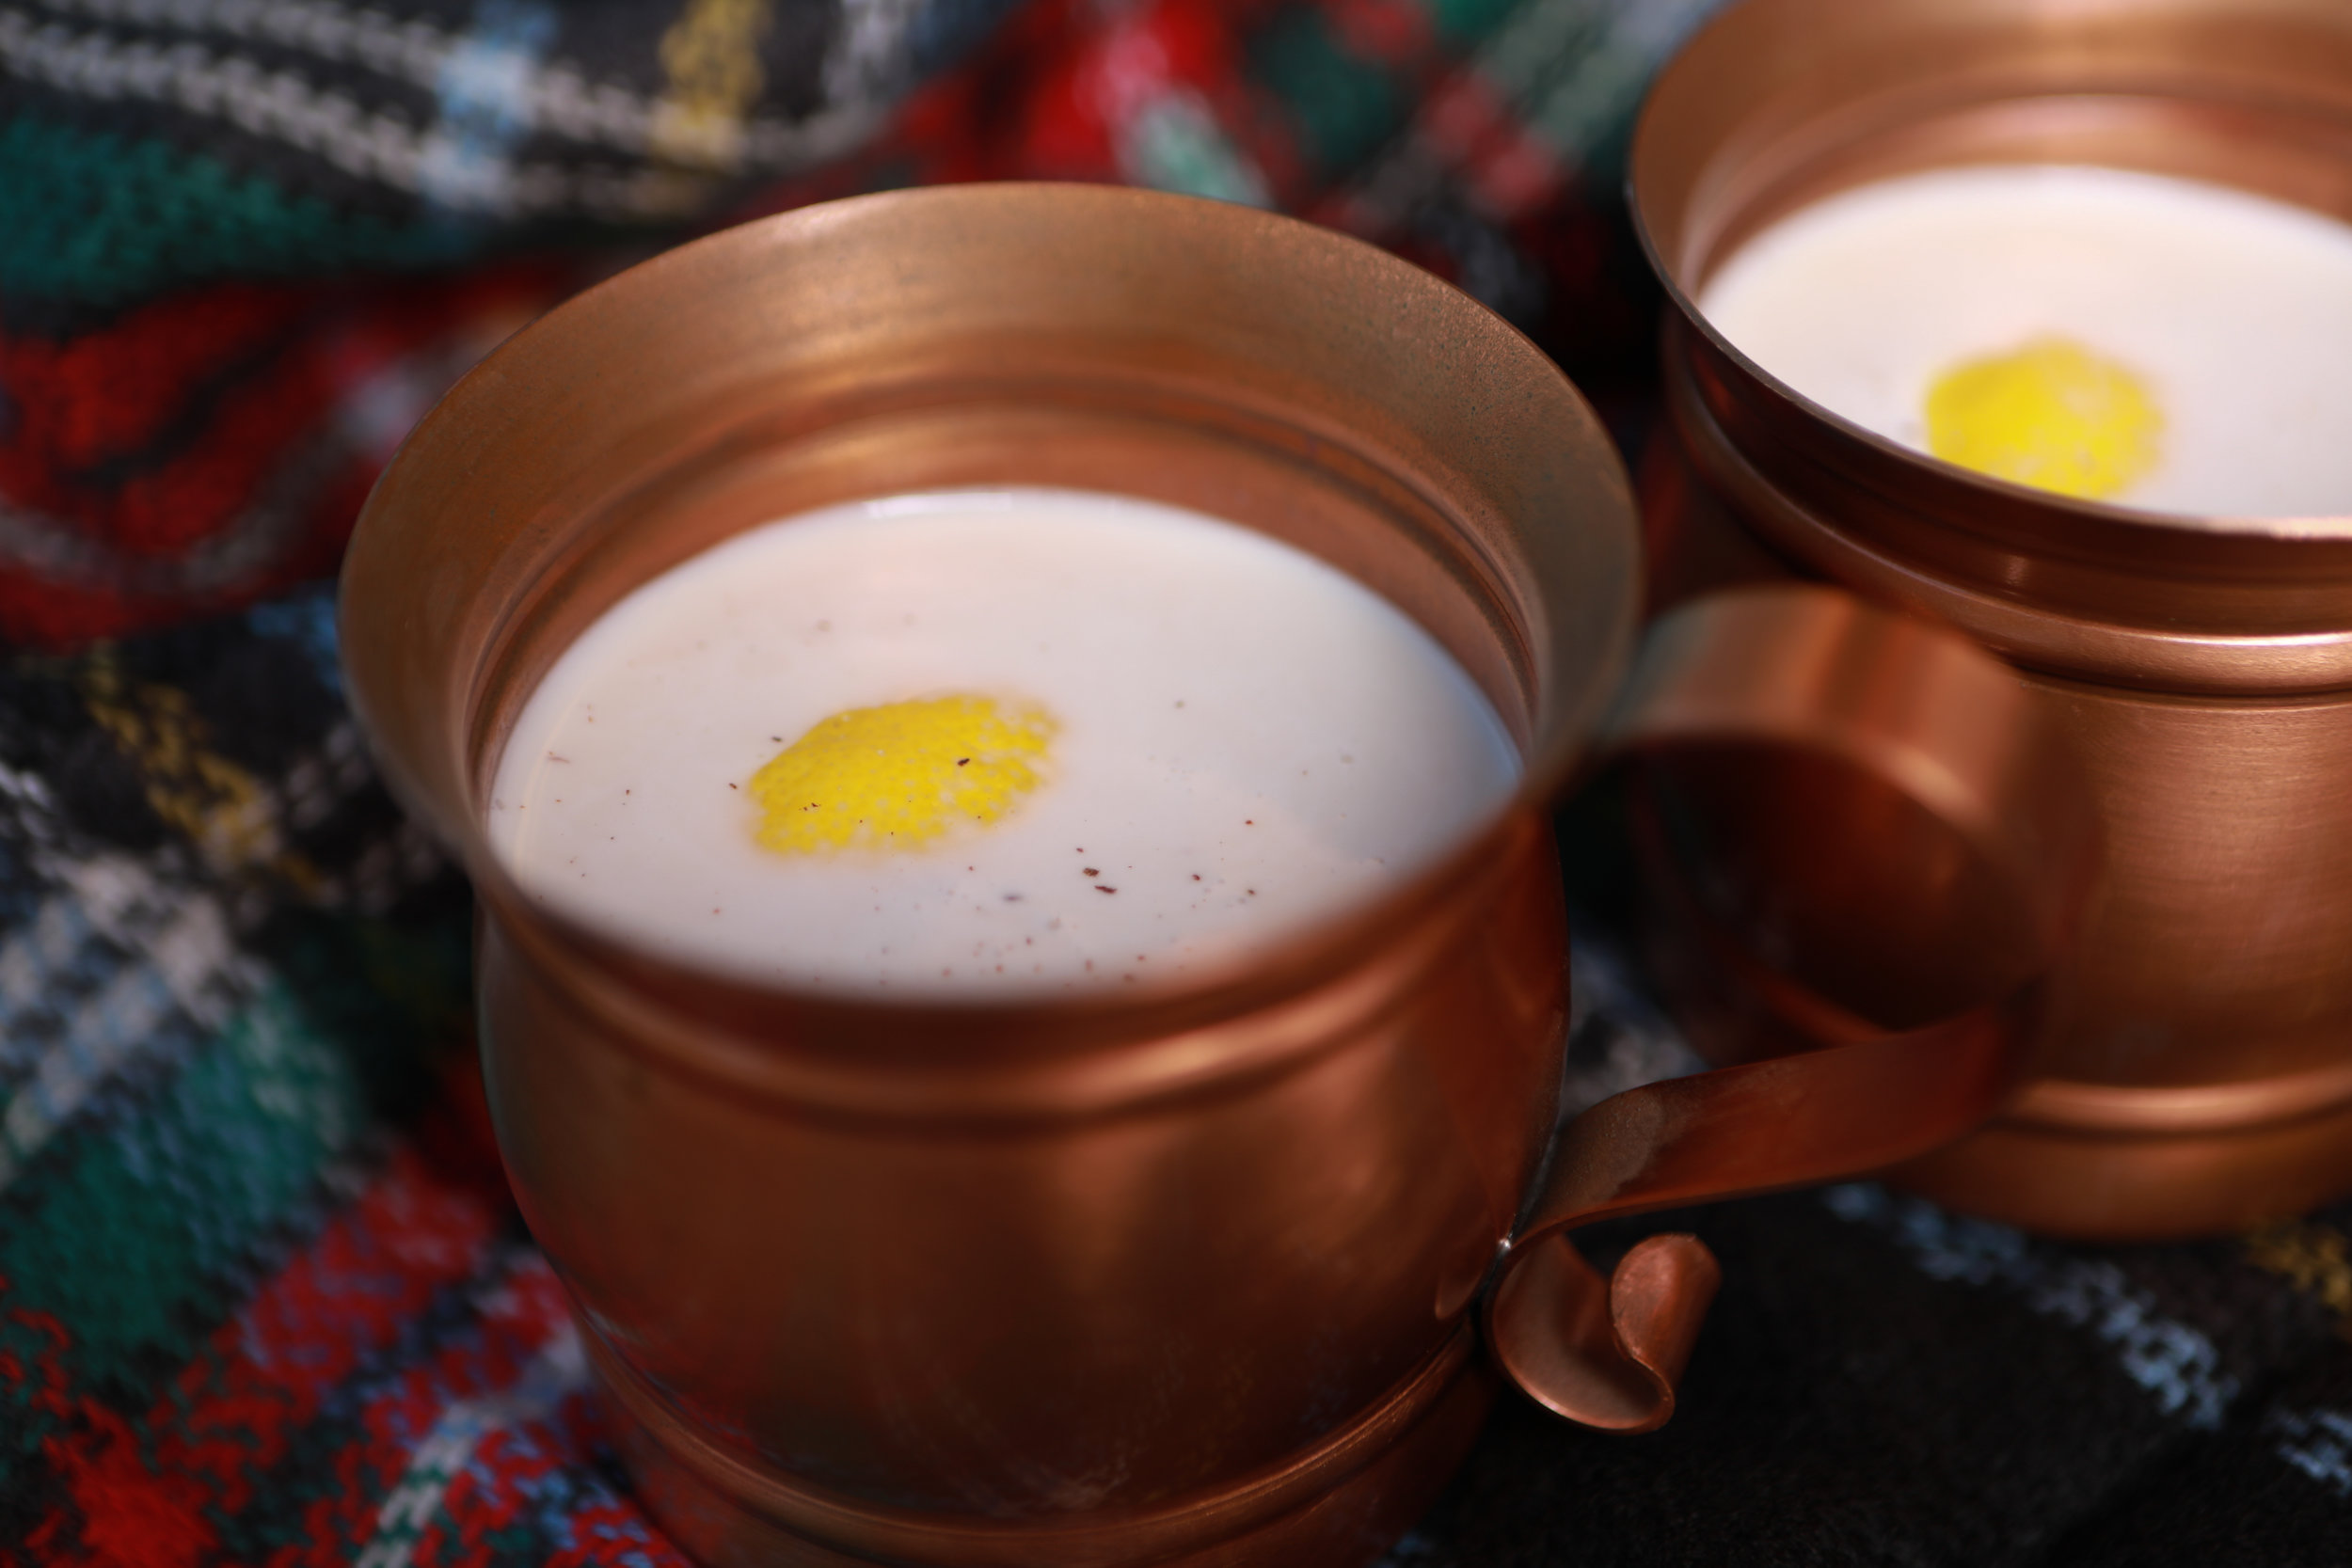 Ponche Crema - A traditional Venezuelan holiday recipe, we're bringing it stateside to prove that there are tastier alternatives to eggnog.Ingredients include two types of milk, eggs, lemon peel, vanilla, and aged rum.Also available as a non-alcoholic punch.